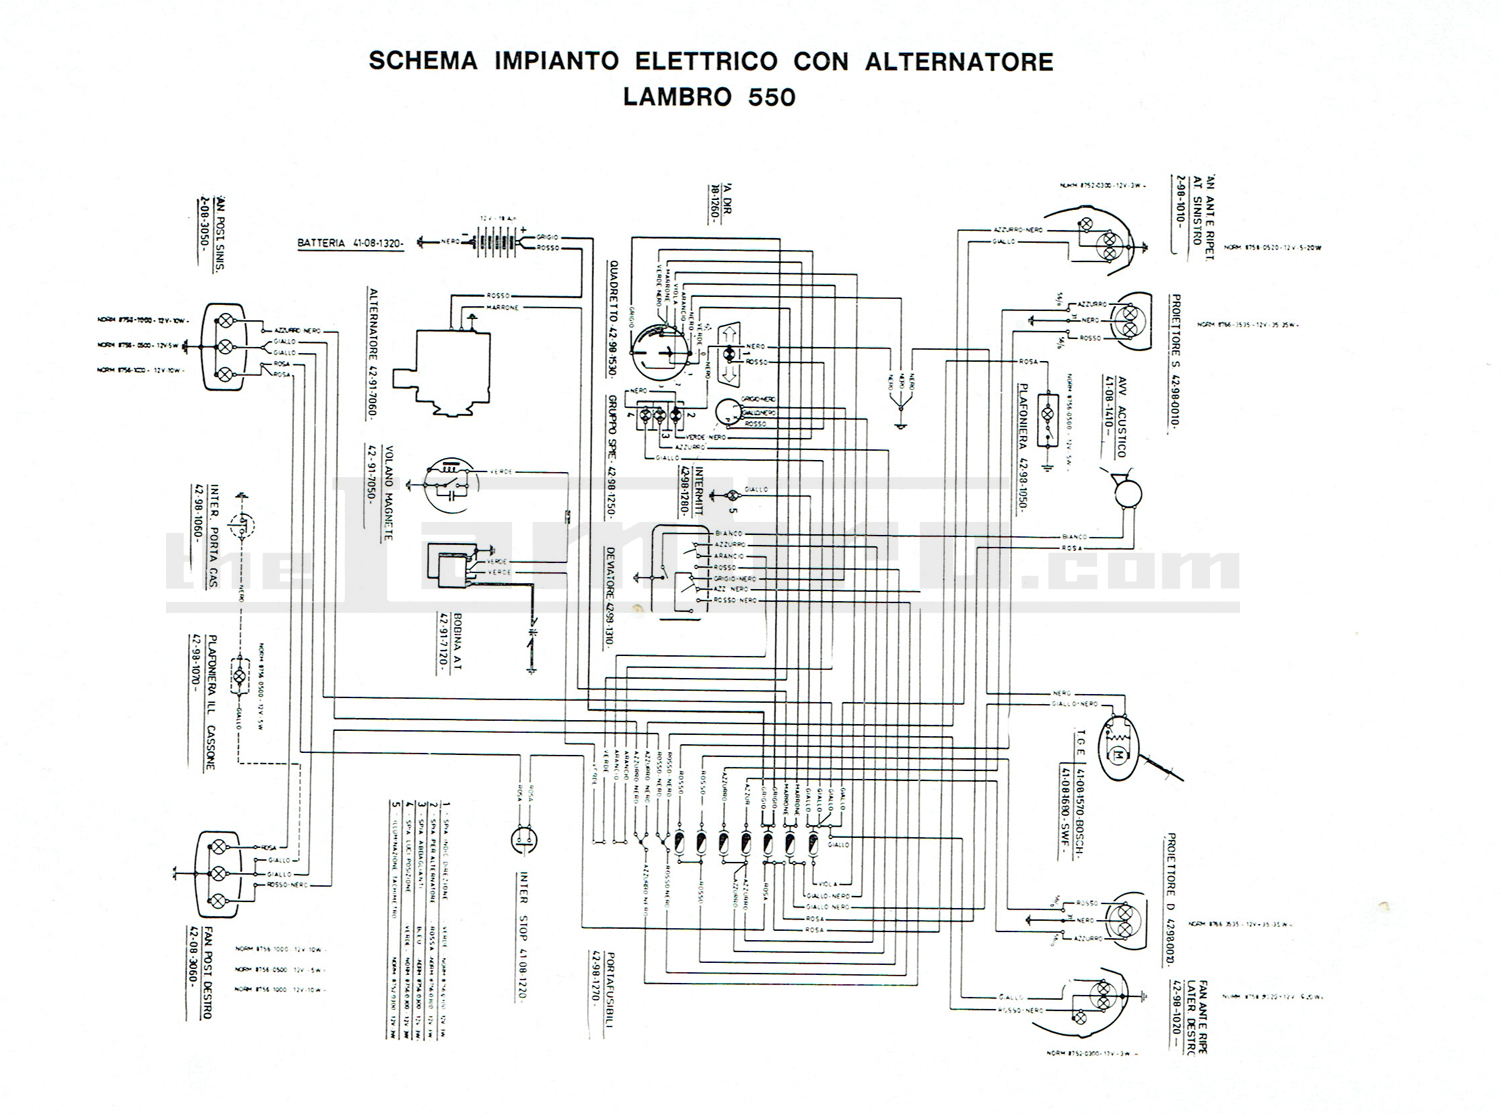 Volvo Penta Kad 32 Wiring Diagram - Wiring Diagram Show write-courtesy -  write-courtesy.bilancestube.it | Volvo Kad 43 Wiring Diagram |  | write-courtesy.bilancestube.it